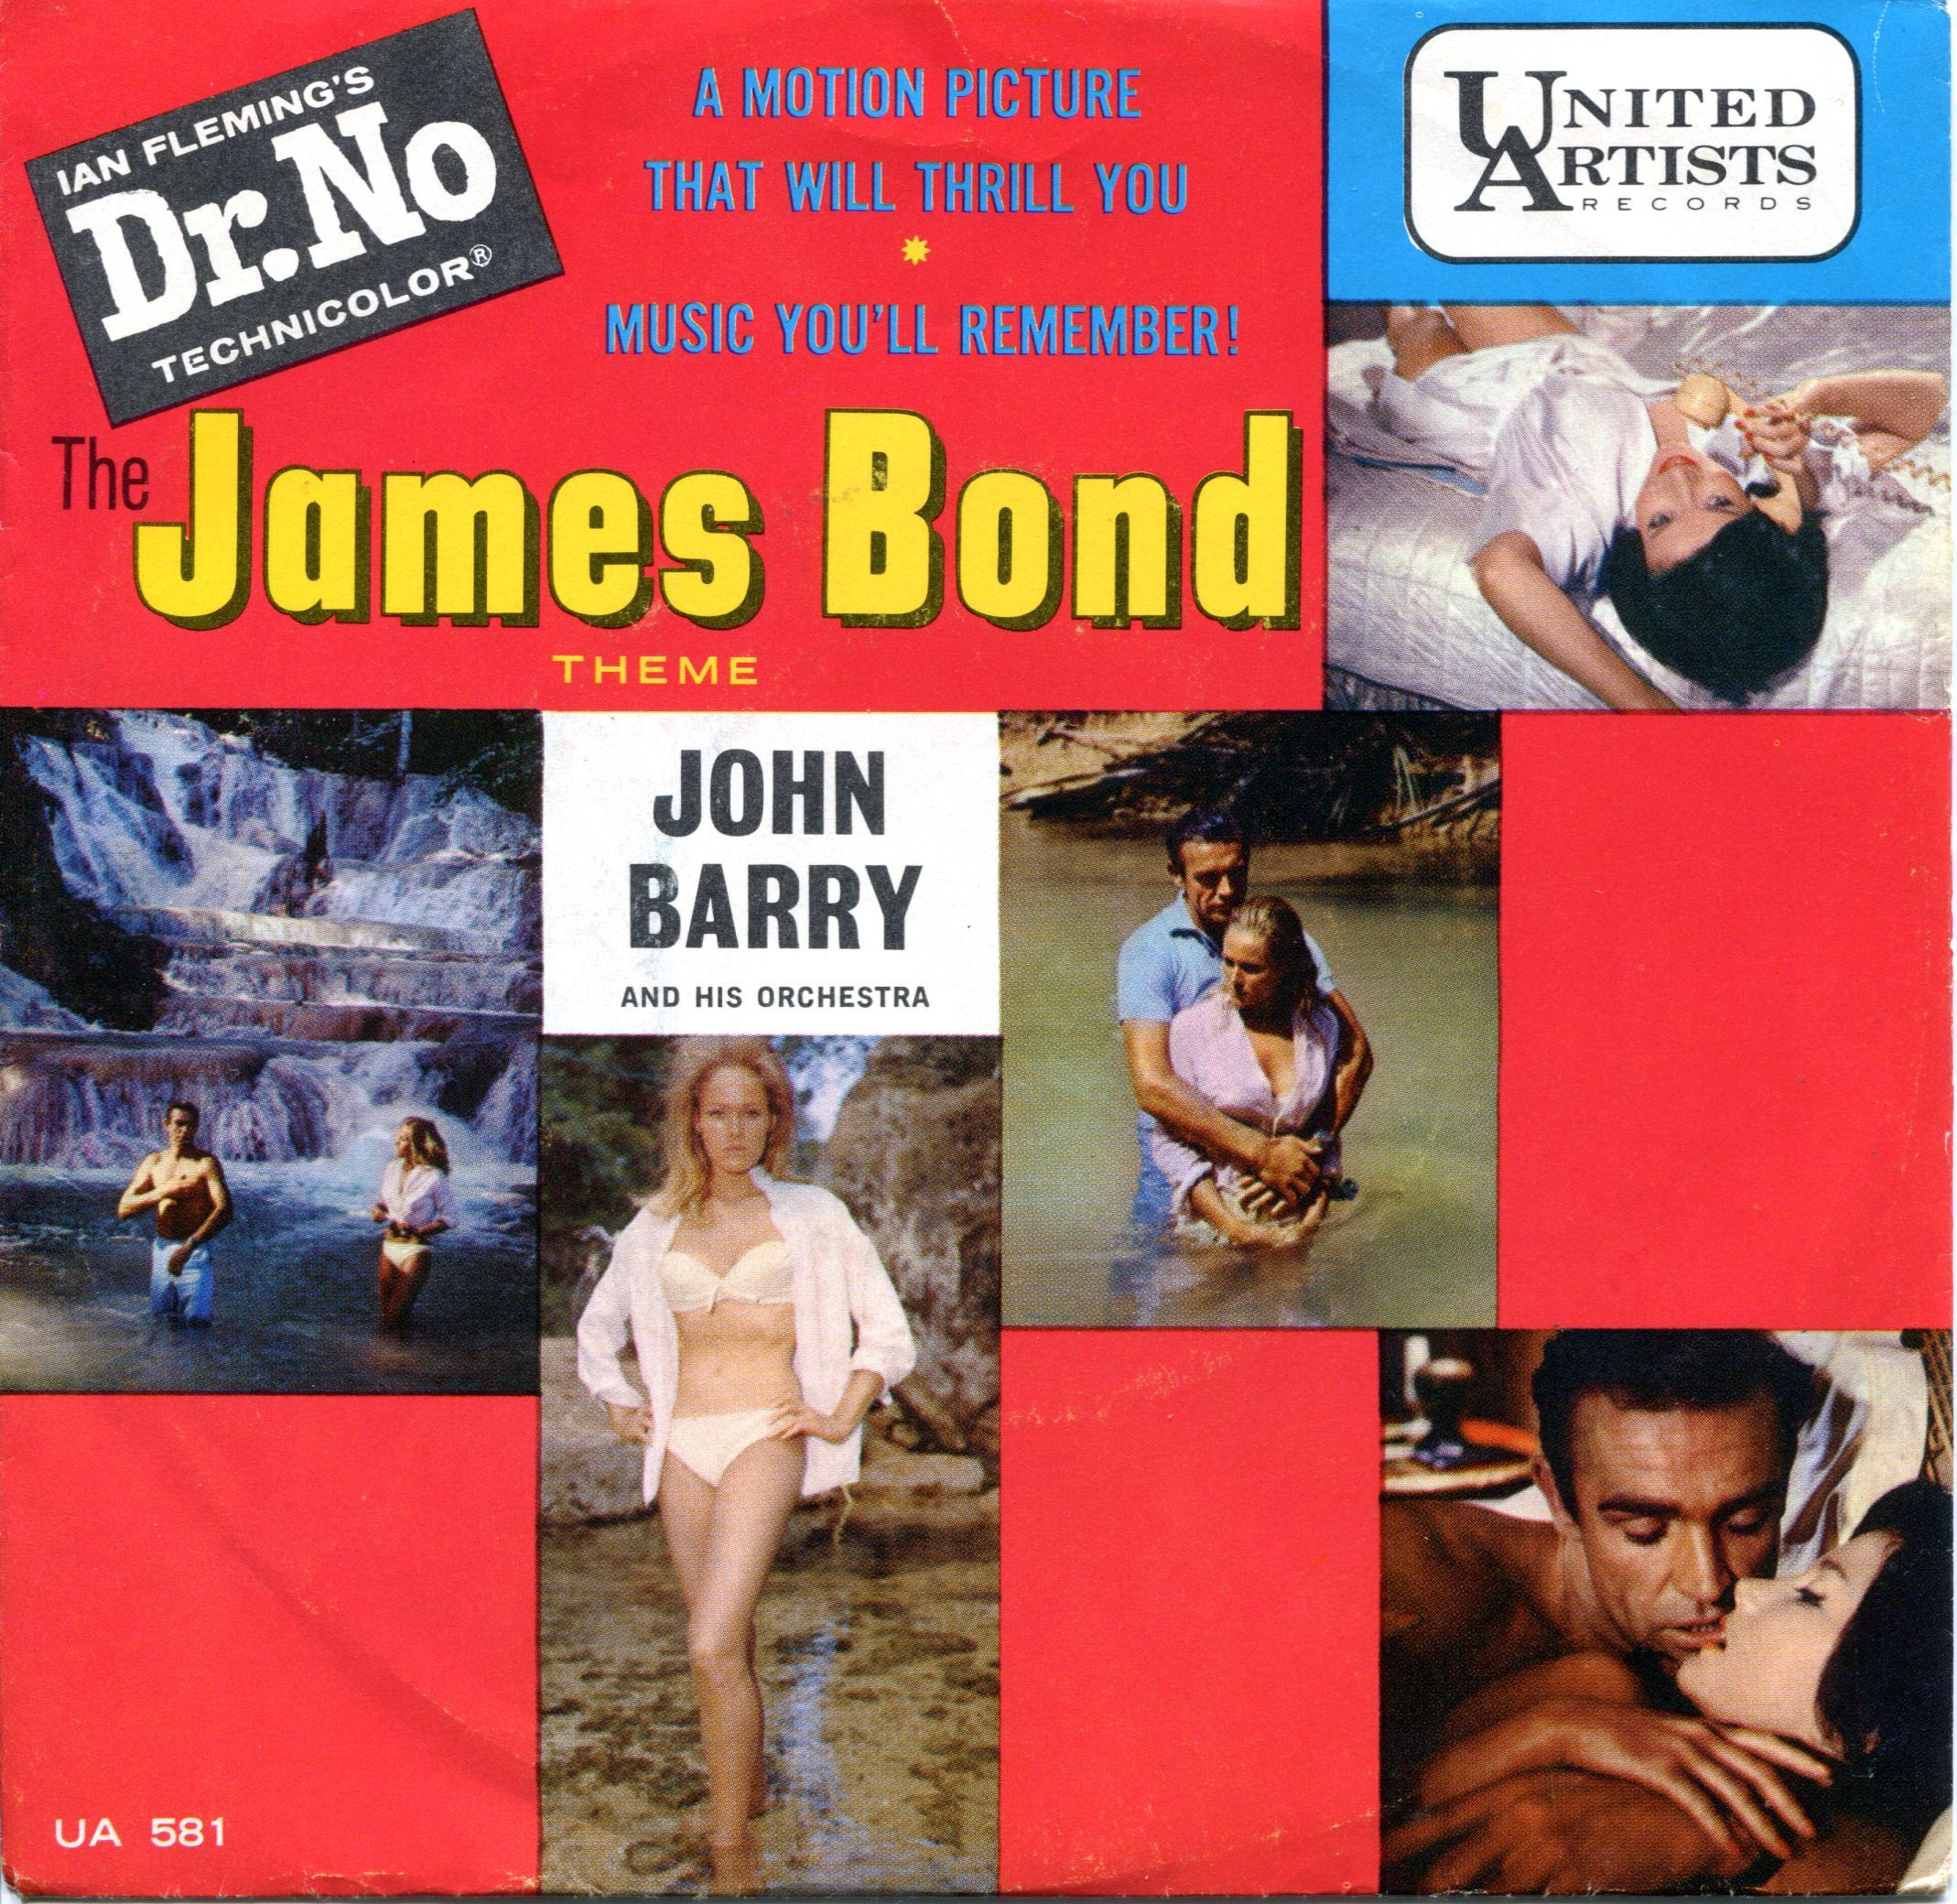 Dr No James Bond theme by John Barry